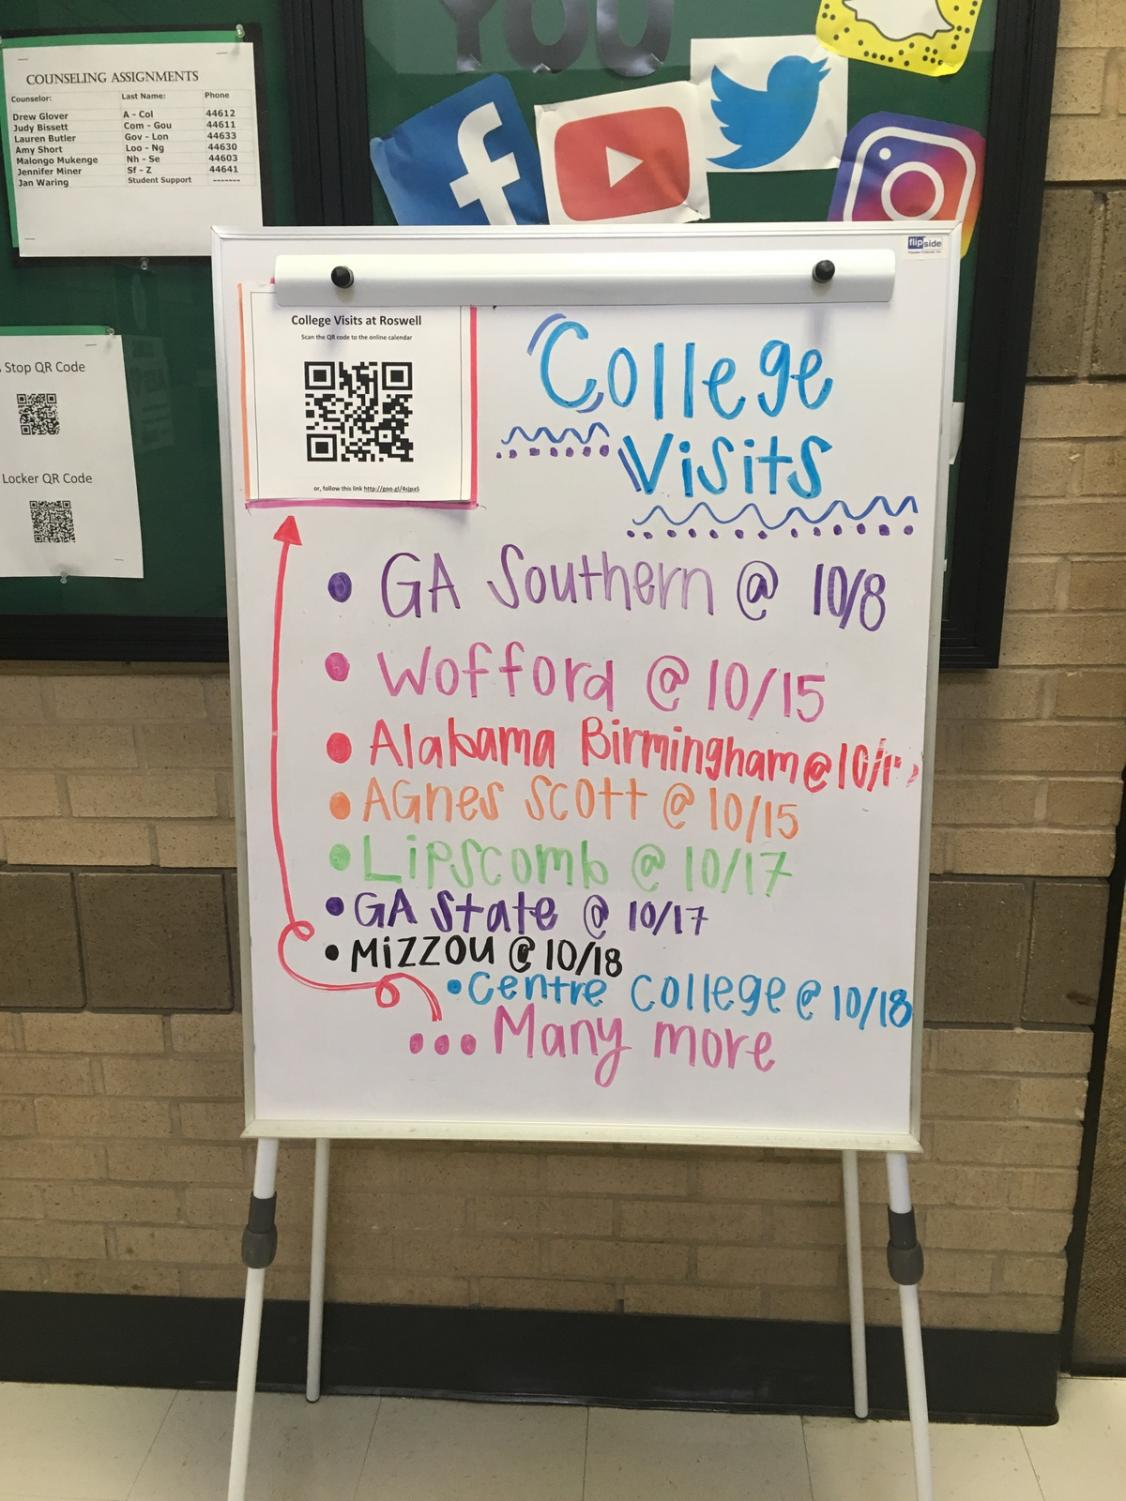 Counselors encourage students to consider attending college visits. Credit: Bridget Frame